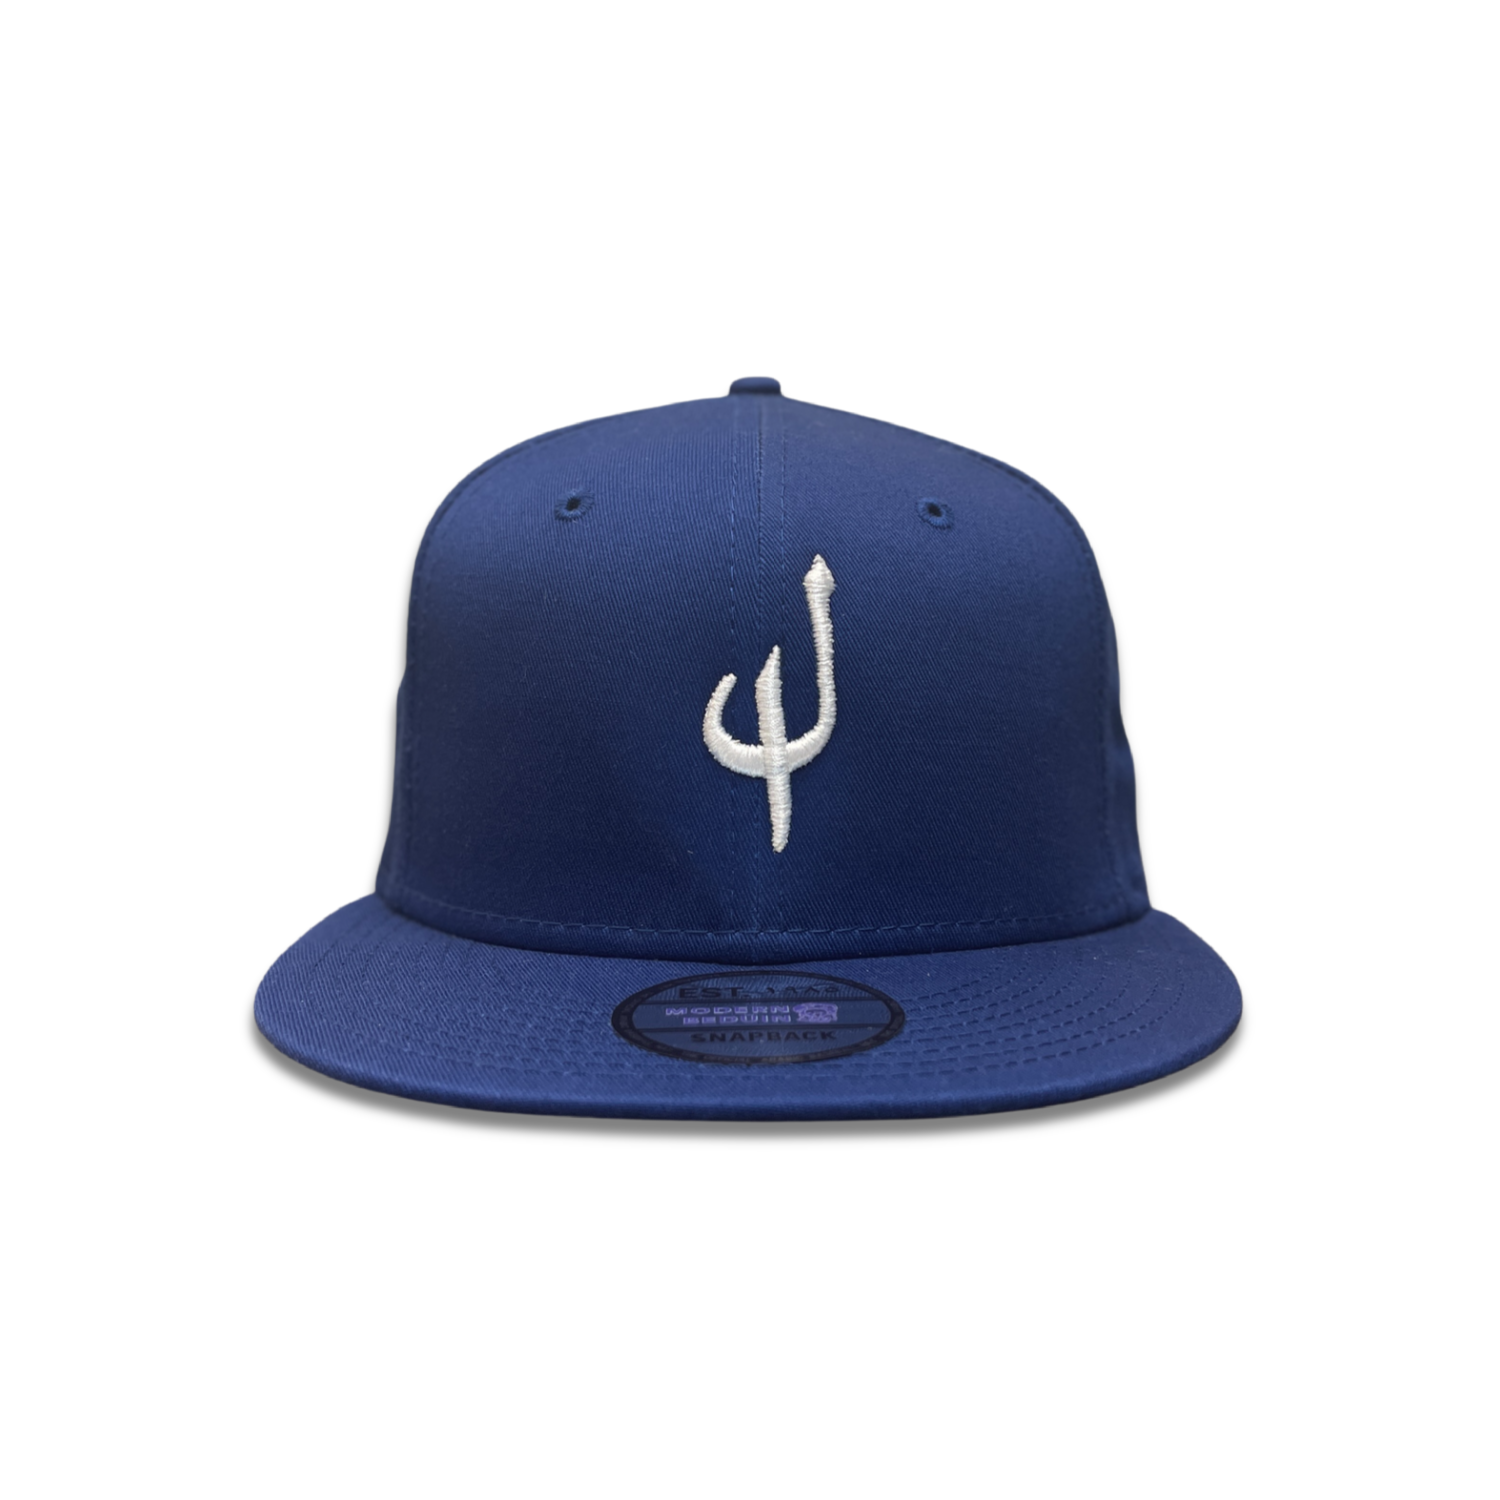 LA (لوس انجلوس) Arabic Baseball Hat